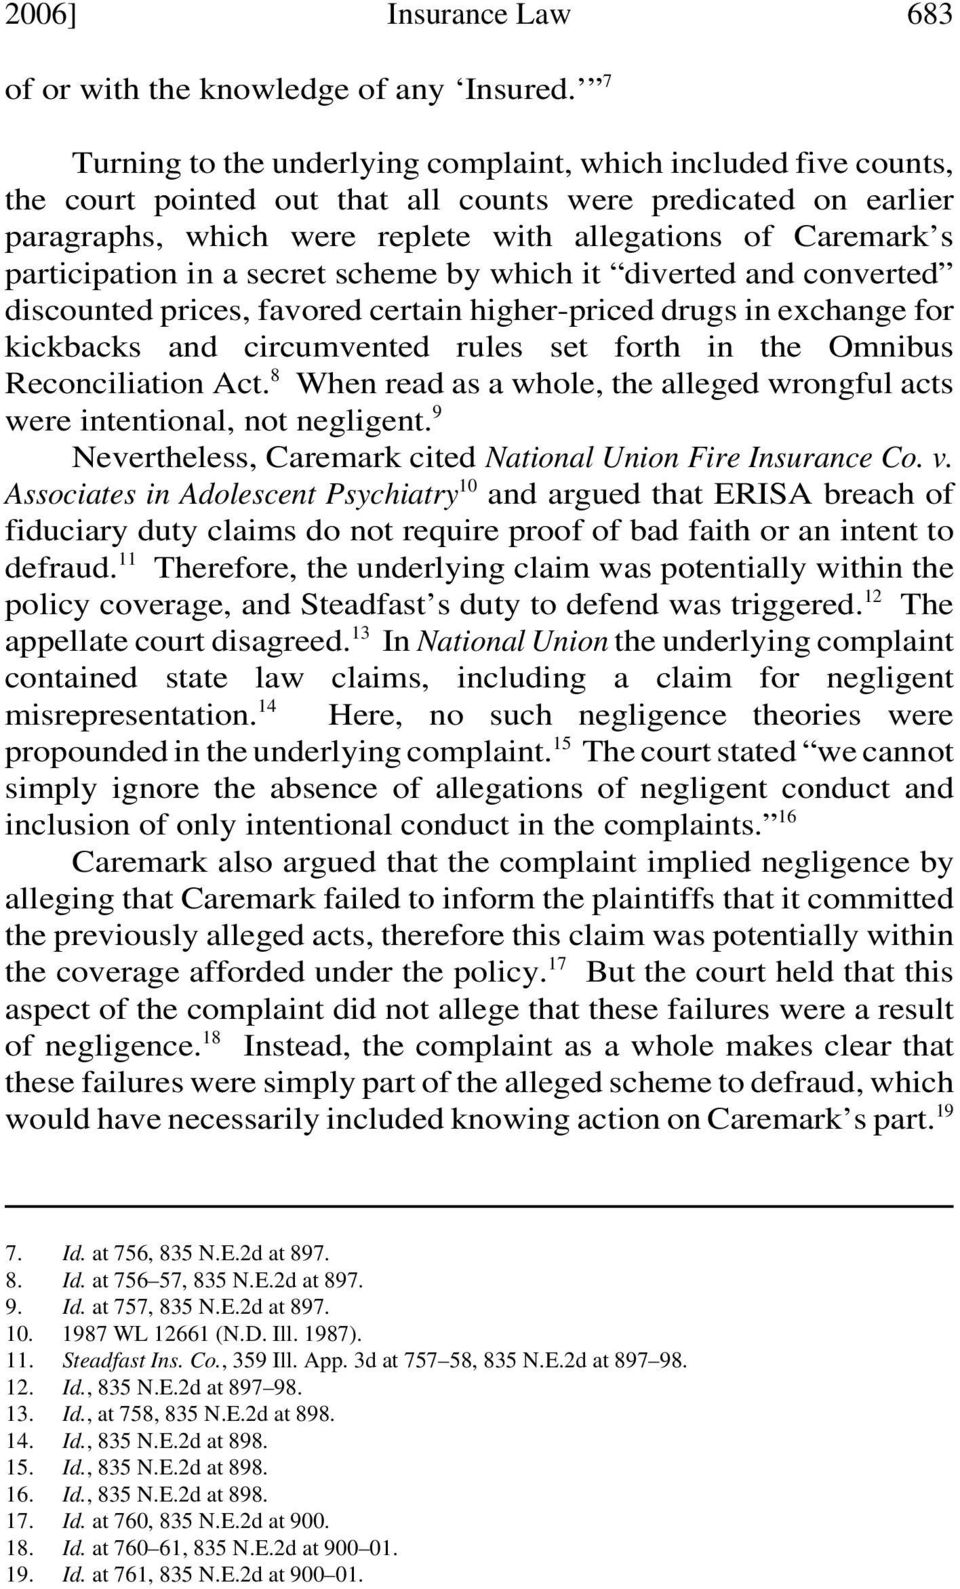 participation in a secret scheme by which it diverted and converted discounted prices, favored certain higher-priced drugs in exchange for kickbacks and circumvented rules set forth in the Omnibus